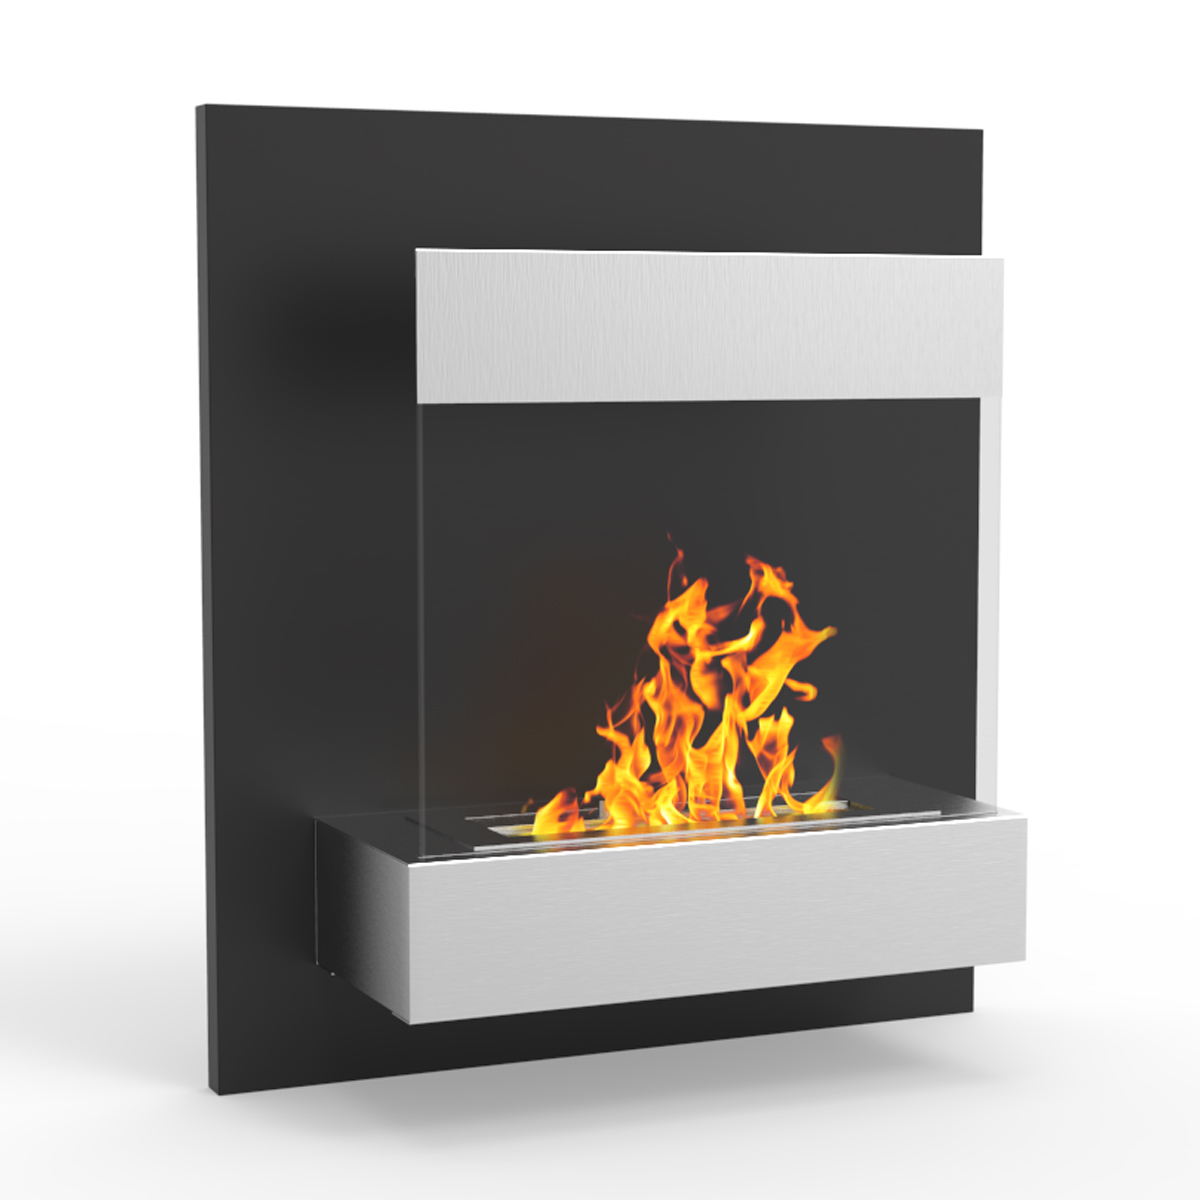 Ethanol Fireplaces Reviews Regal Flame Boston 24 Inch Ventless Wall Mounted Bio Ethanol Fireplace